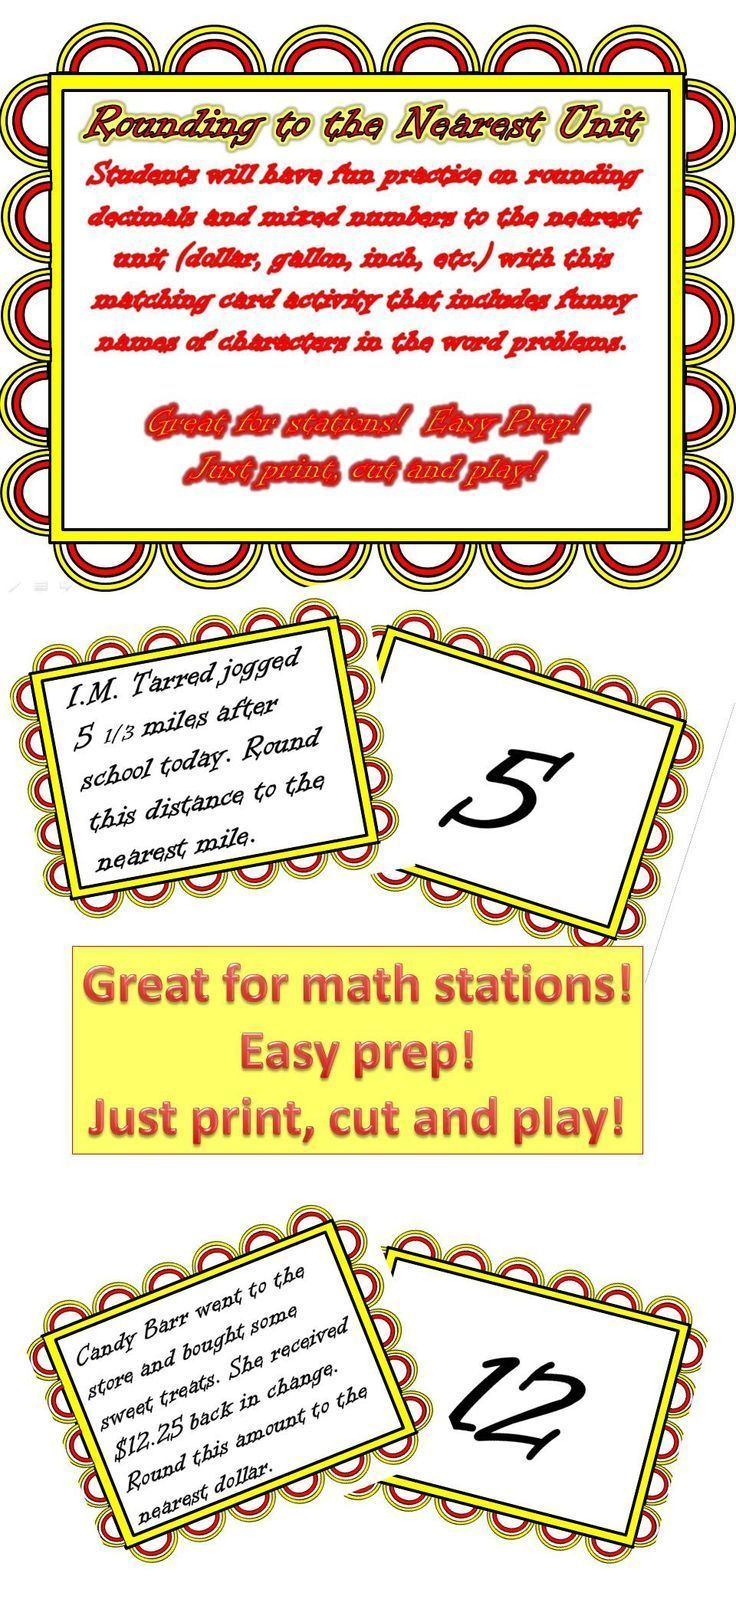 Students will have fun practice on rounding decimals and mixed numbers to the nearest unit (dollar, gallon, inch, etc.) with this matching card activity that includes funny names of characters in the word problems.  14 word problems to be matched with 14